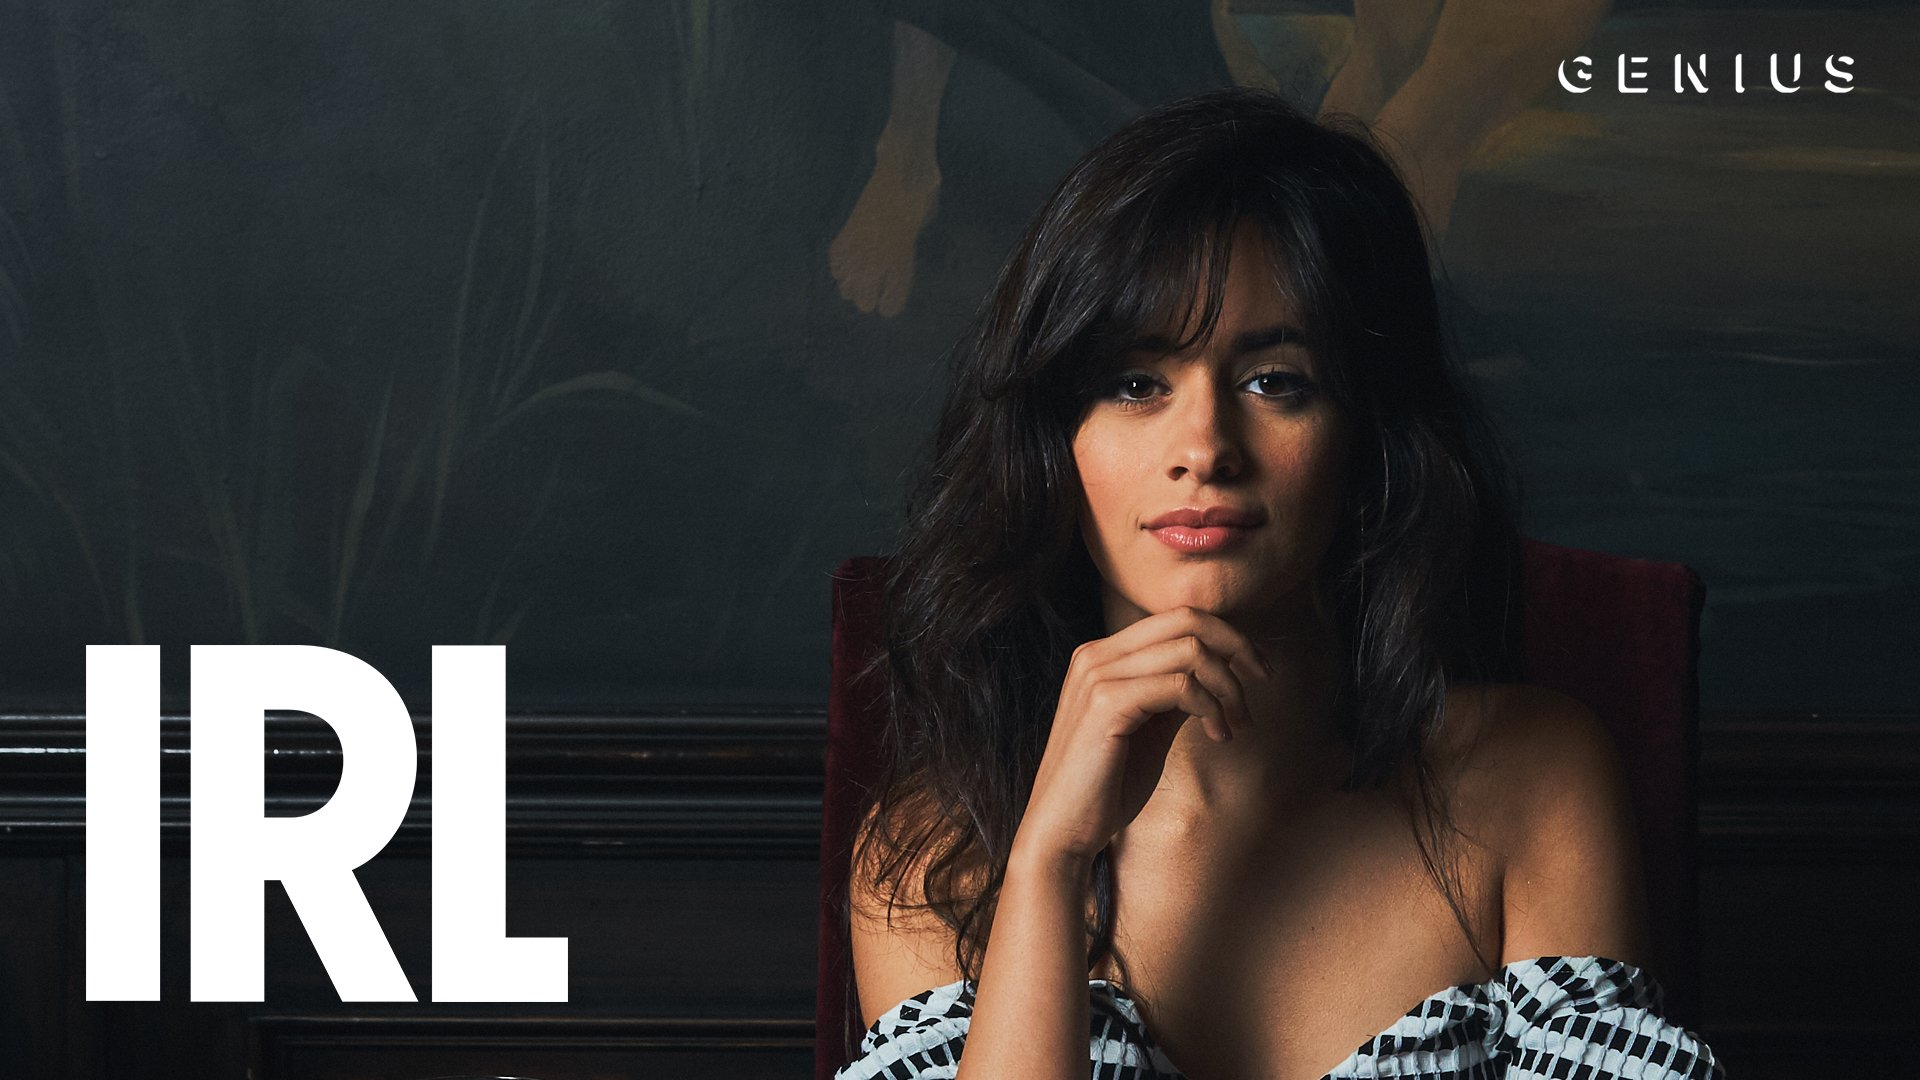 .@camila_cabello has questions, so @robmarkman took her to a psychic to get some answers �� https://t.co/marJ4pd8vD https://t.co/7HCHr4sVD2